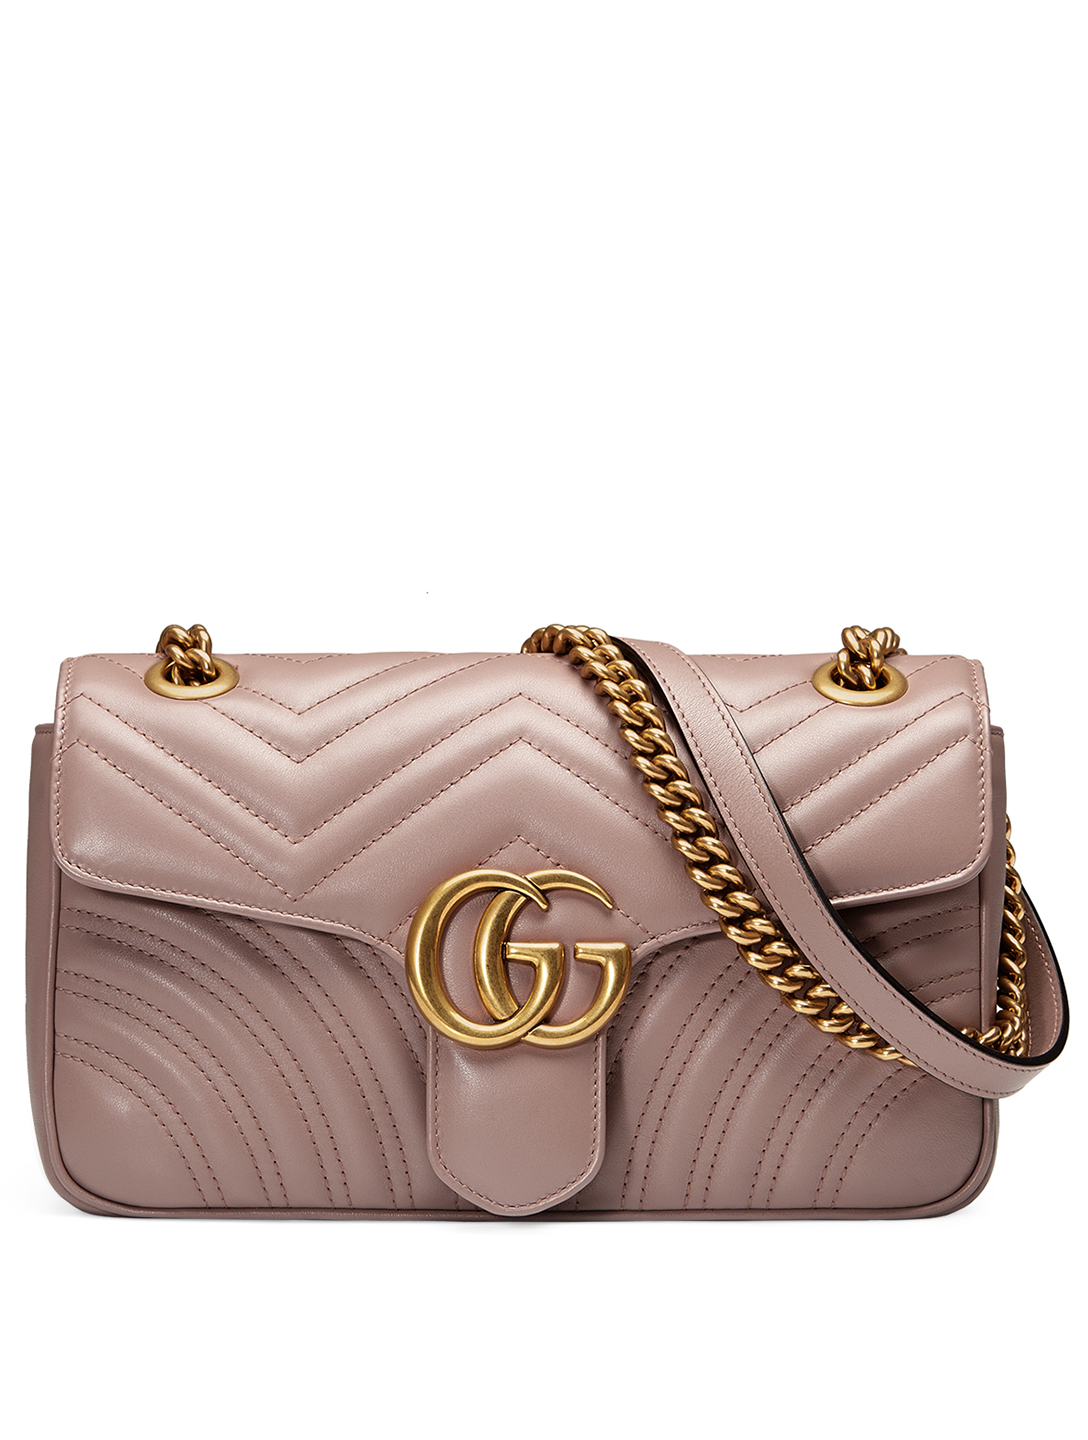 GUCCI Small GG Marmont Matelassé Leather Chain Shoulder Bag Women's Pink